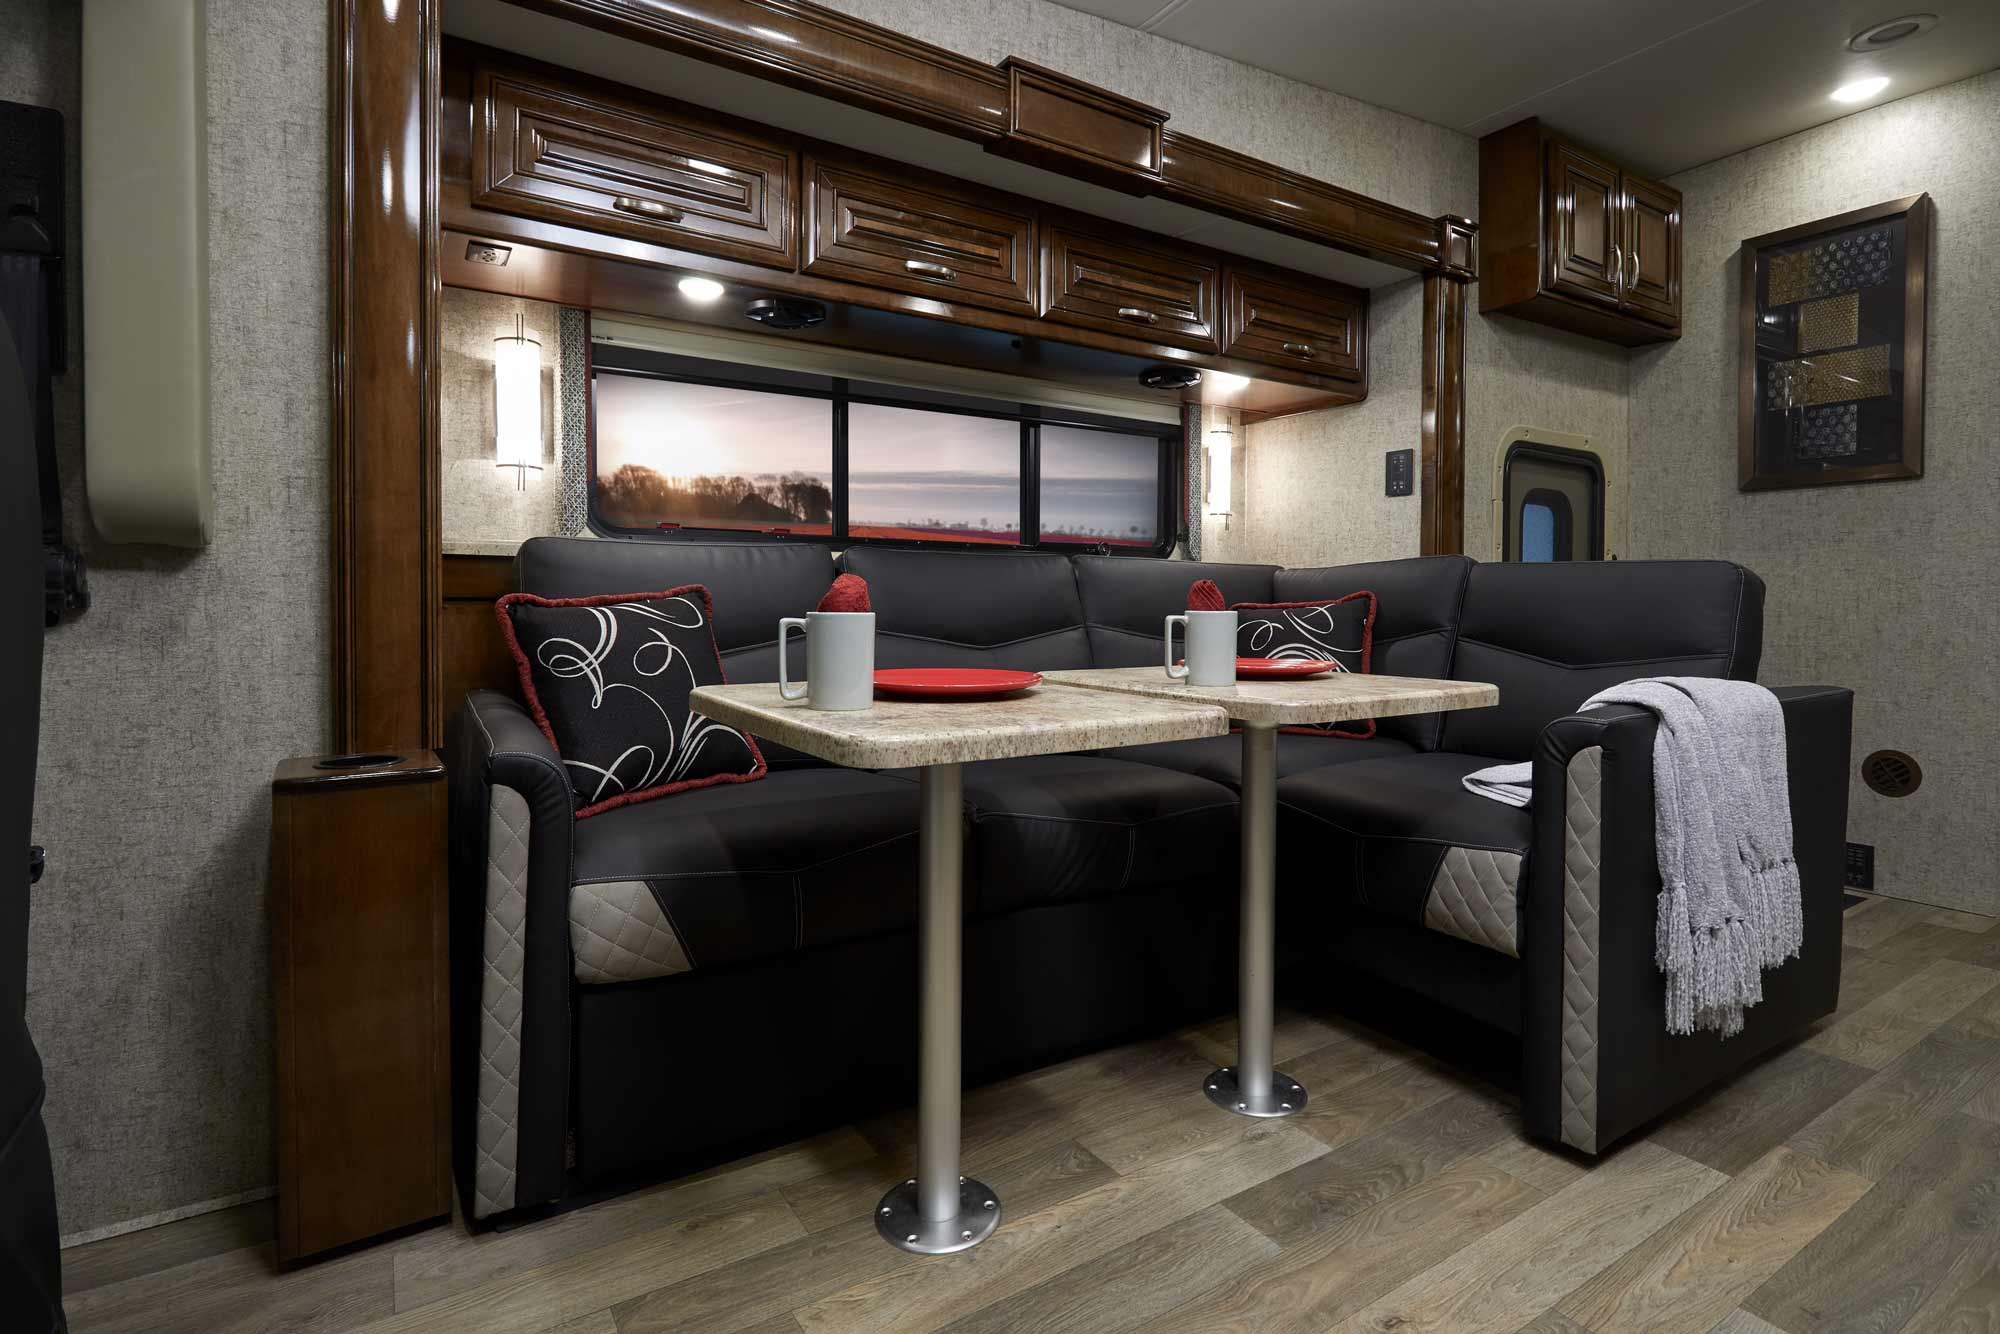 A Class C Toy Hauler Motorhomes Outlaw A Large likewise Toy Haulers Outlaw Class A Rv furthermore Motorhomemanufacturersfactorytours in addition Img X besides A E B B E Bb Fc F. on thor motor coach toy hauler floor plans